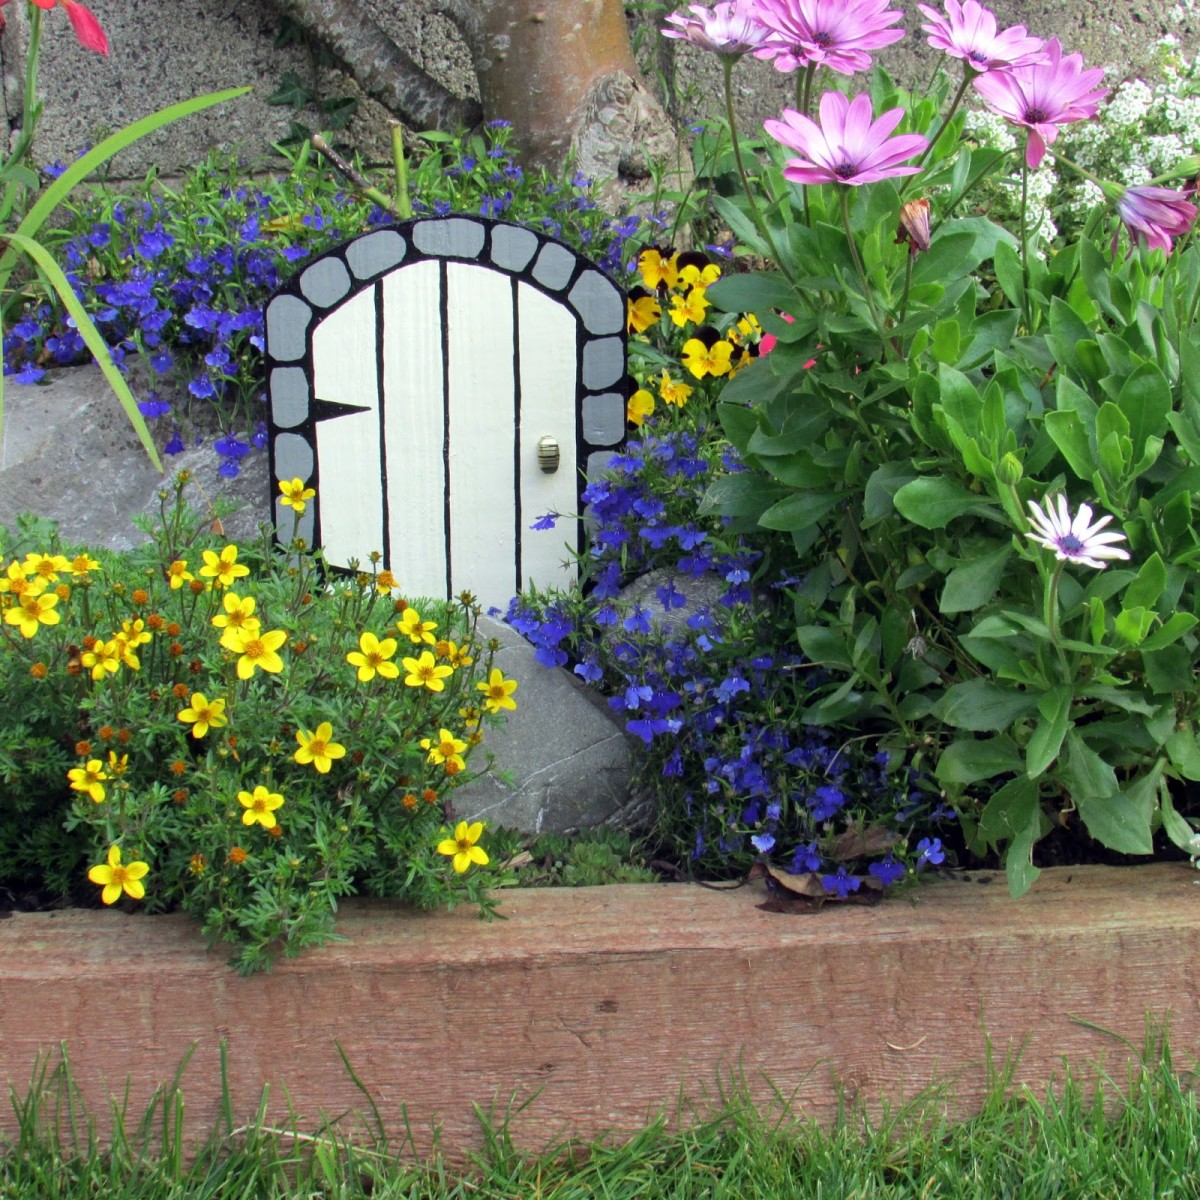 How to Make a Wooden Fairy Door for the Garden